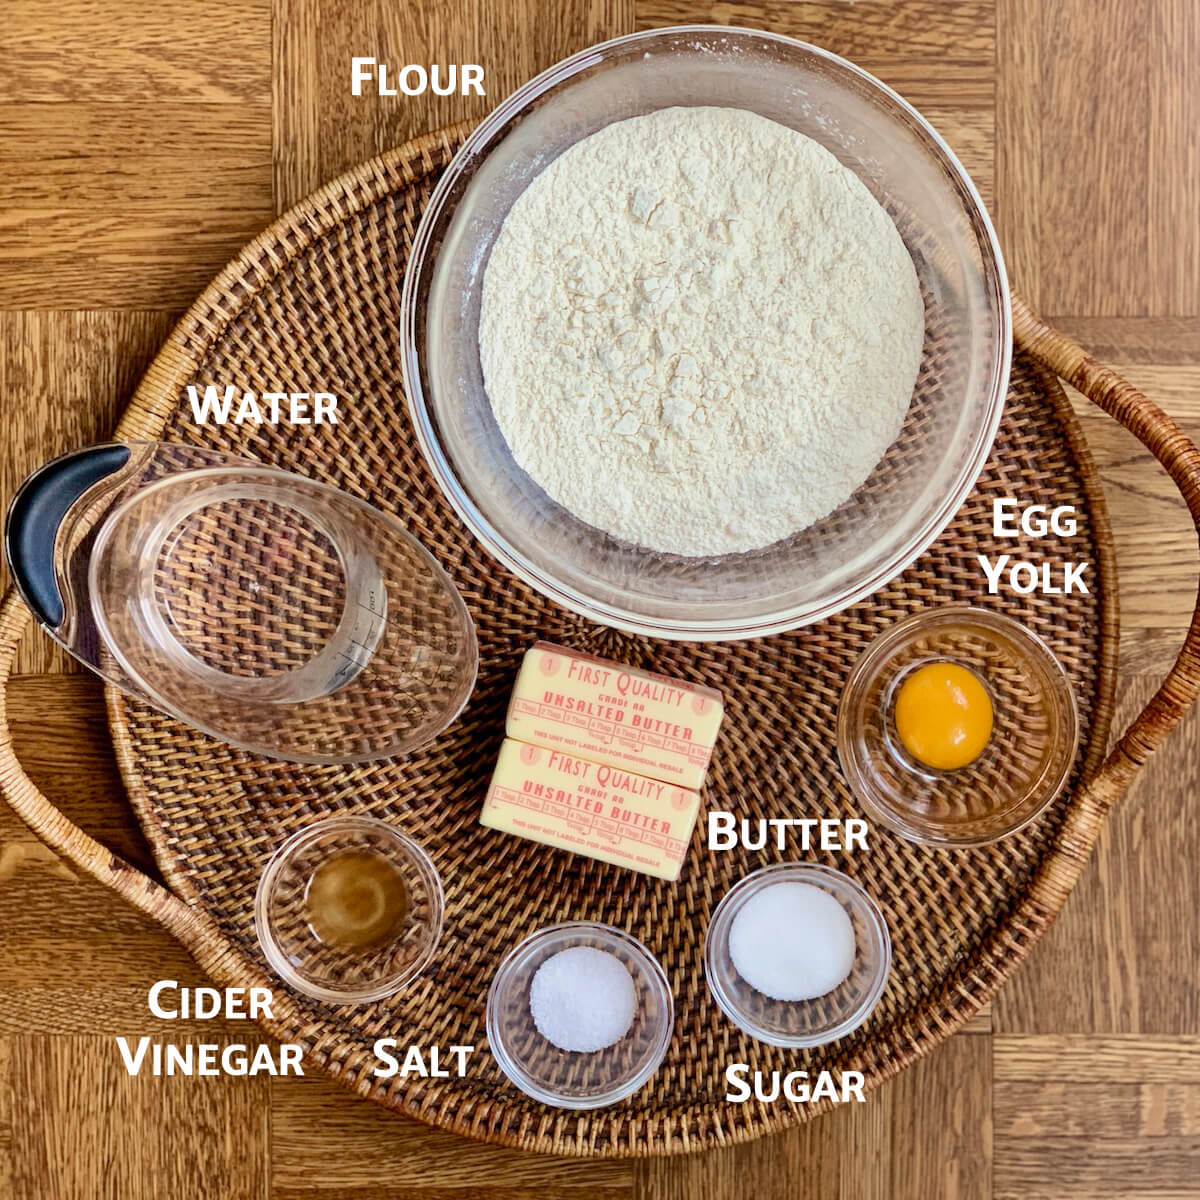 short crust pastry ingredients on tray from overhead marked